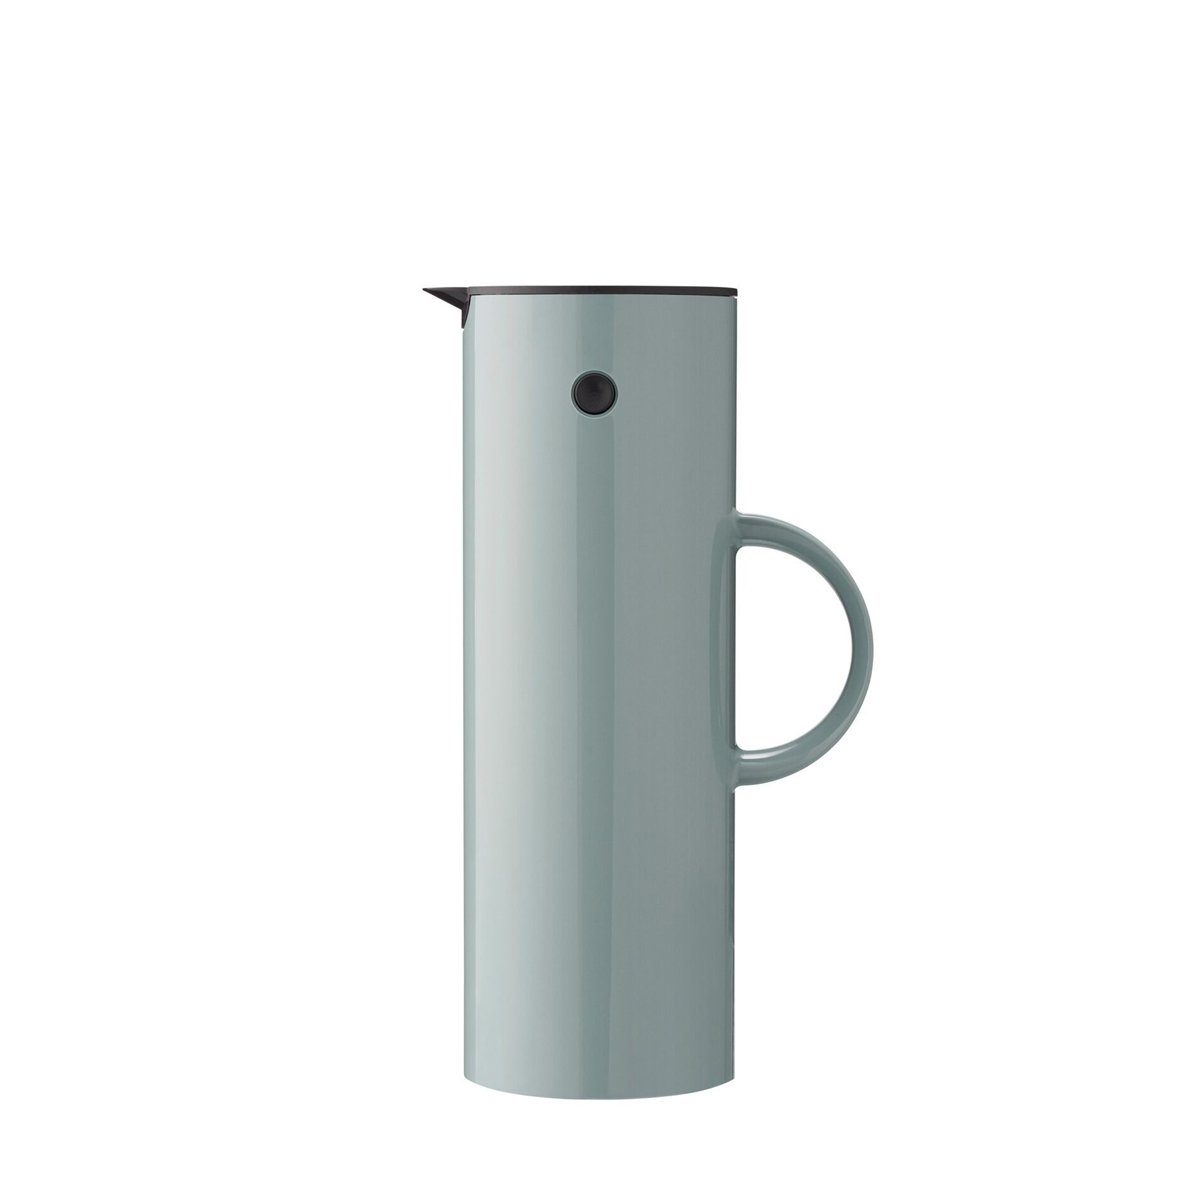 Stelton Stelton EM77 Isolierkanne 1 l, dusty green